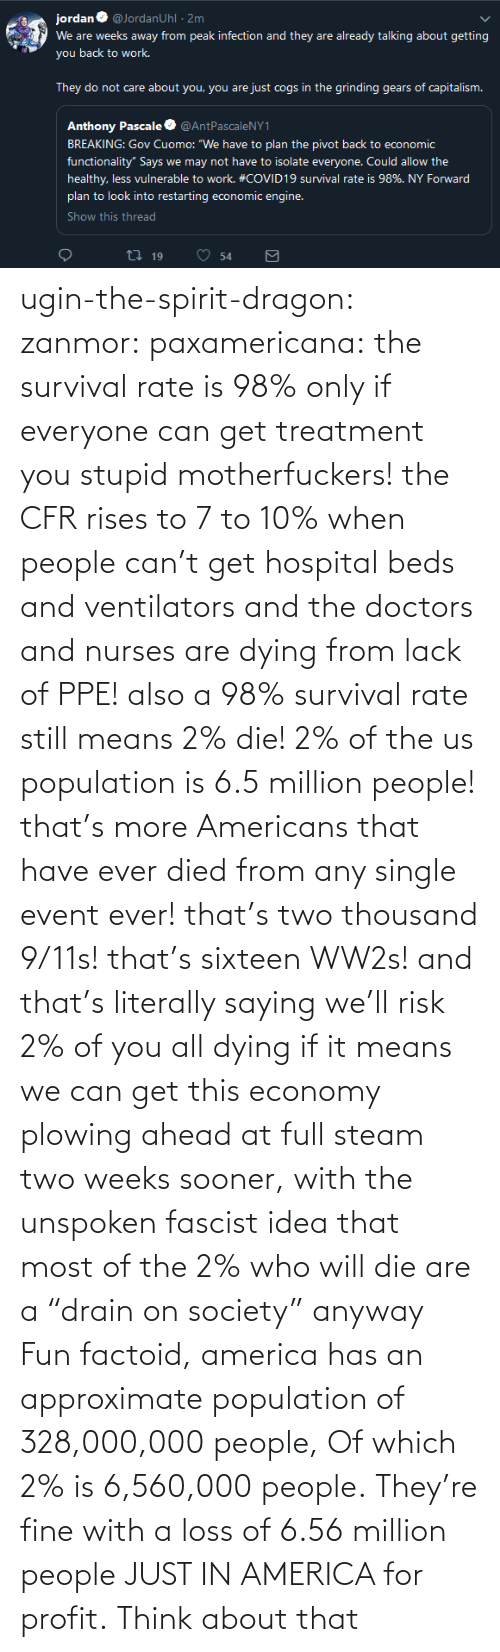 "If It: ugin-the-spirit-dragon: zanmor:   paxamericana:  the survival rate is 98% only if everyone can get treatment you stupid motherfuckers! the CFR rises to 7 to 10% when people can't get hospital beds and ventilators and the doctors and nurses are dying from lack of PPE!  also a 98% survival rate still means 2% die! 2% of the us population is 6.5 million people! that's more Americans that have ever died from any single event ever! that's two thousand 9/11s! that's sixteen WW2s!  and that's literally saying we'll risk 2% of you all dying if it means we can get this economy plowing ahead at full steam two weeks sooner, with the unspoken fascist idea that most of the 2% who will die are a ""drain on society"" anyway    Fun factoid, america has an approximate population of 328,000,000 people,  Of which 2% is 6,560,000 people. They're fine with a loss of 6.56 million people JUST IN AMERICA for profit. Think about that"